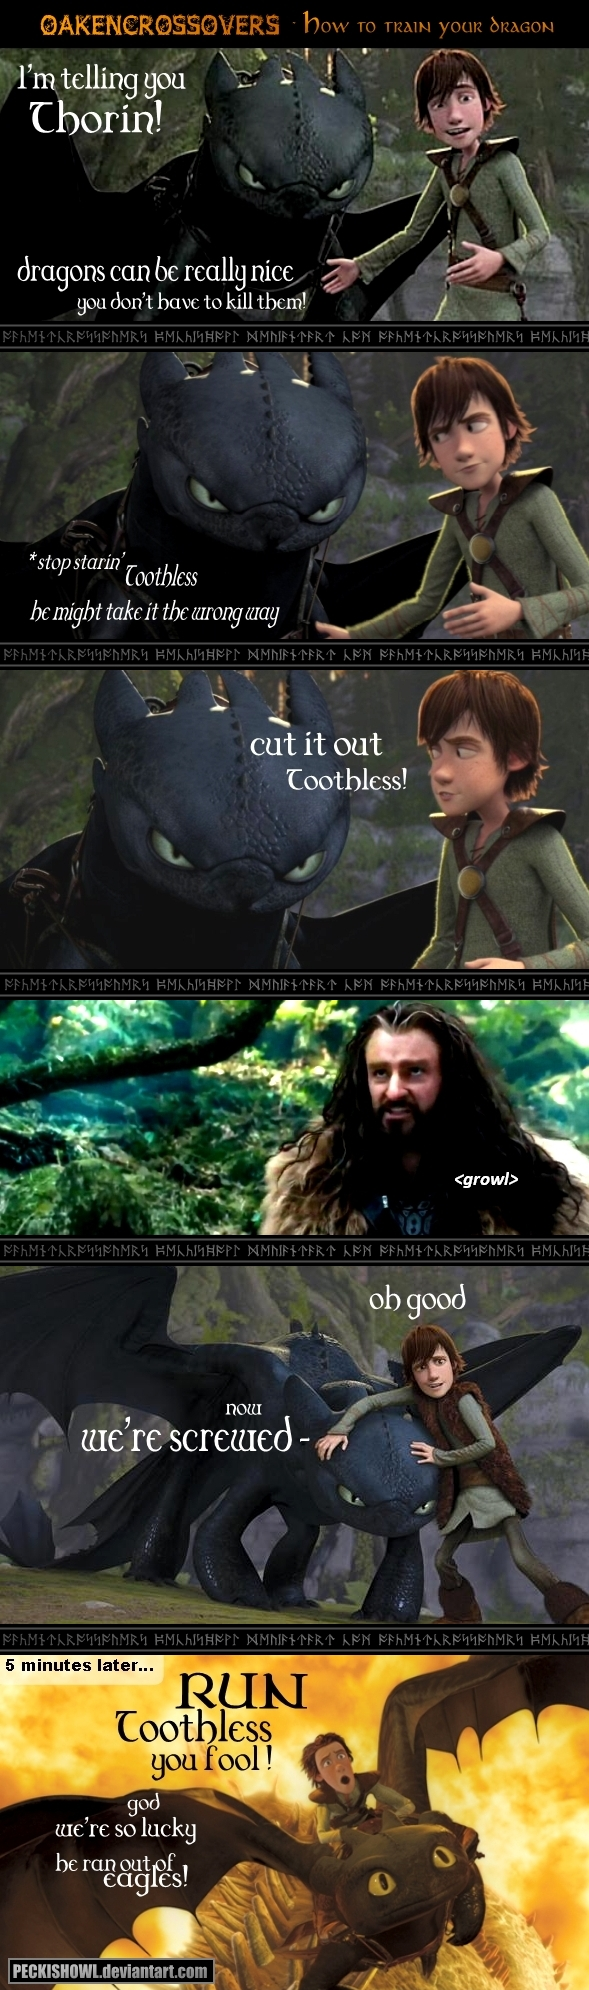 Oakencrossover #1: How To Train Your Dragon  Pt1 By Peckishowl